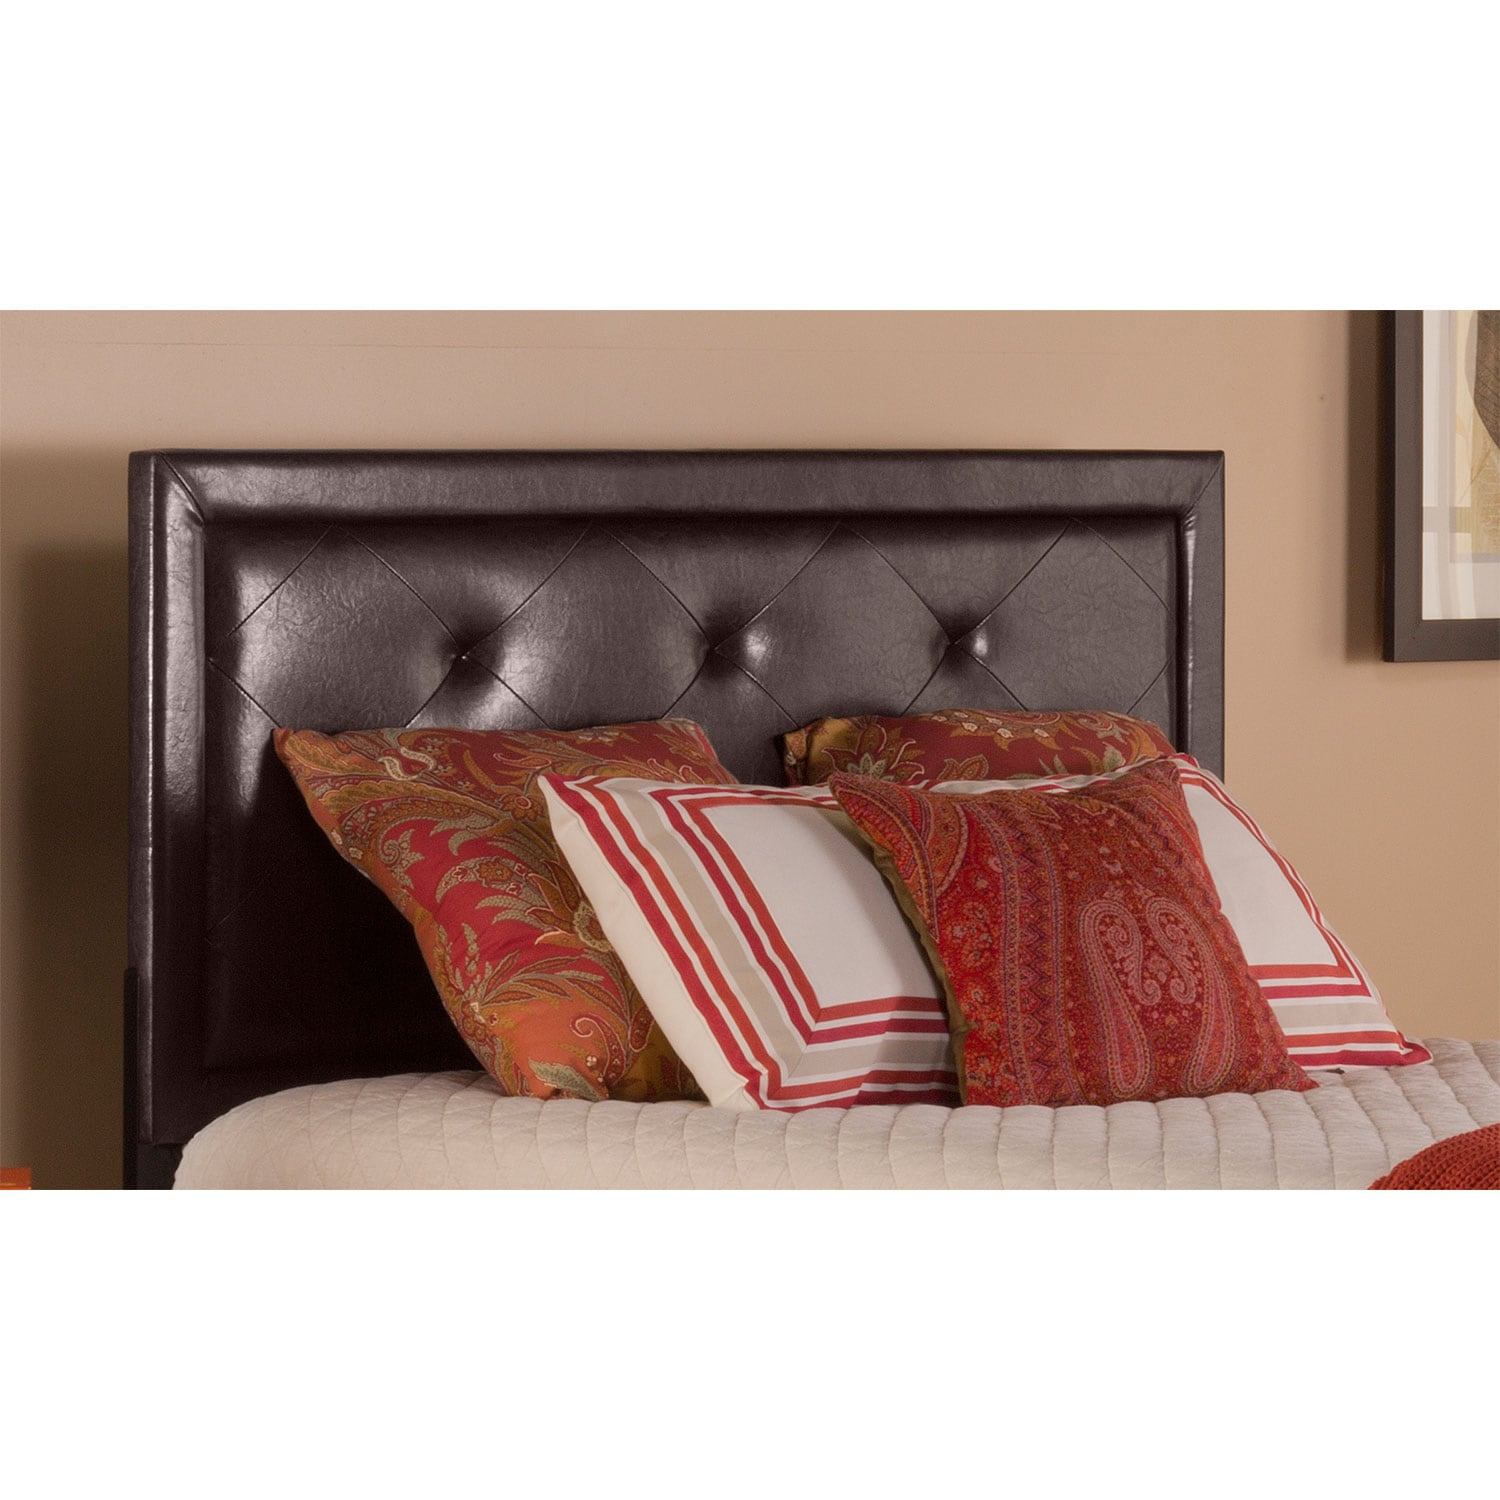 Bedroom Furniture - Becker Queen Headboard - Brown